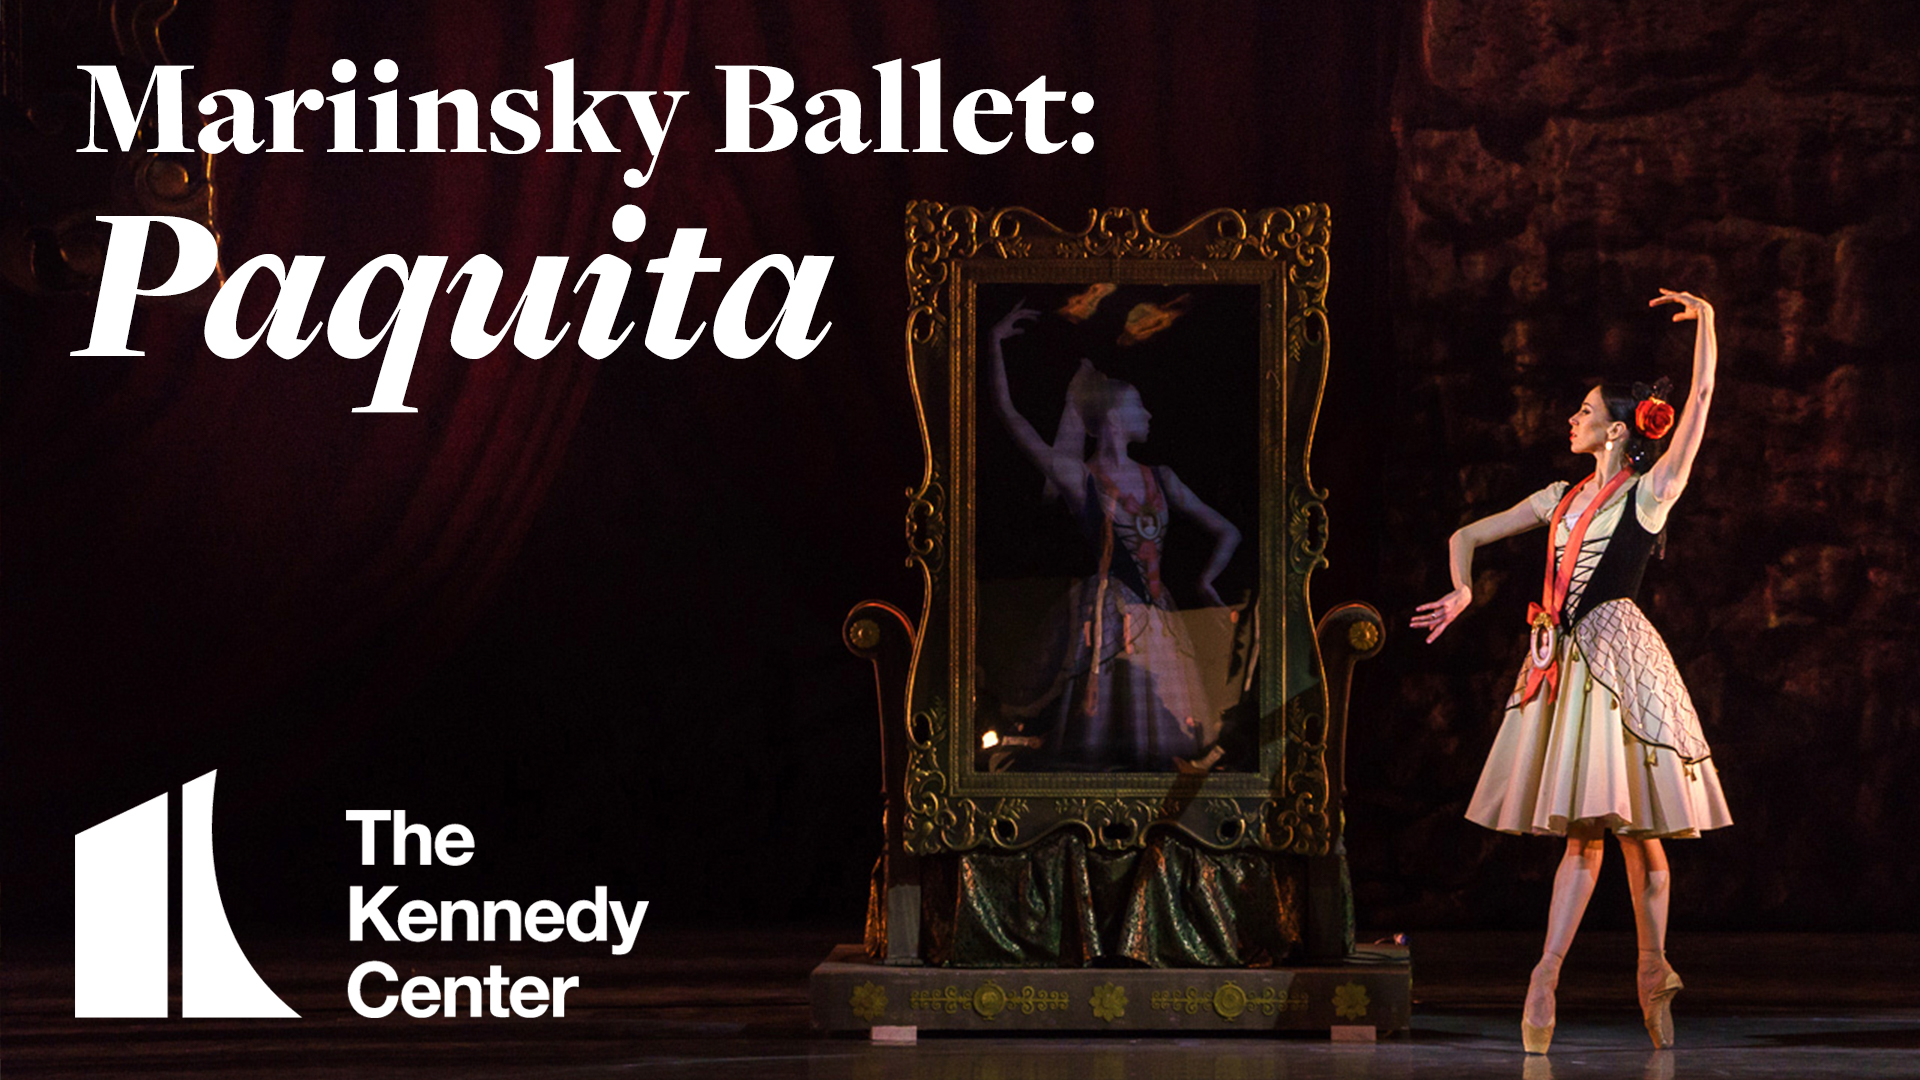 Mariinsky Ballet: Paquita | The Kennedy Center